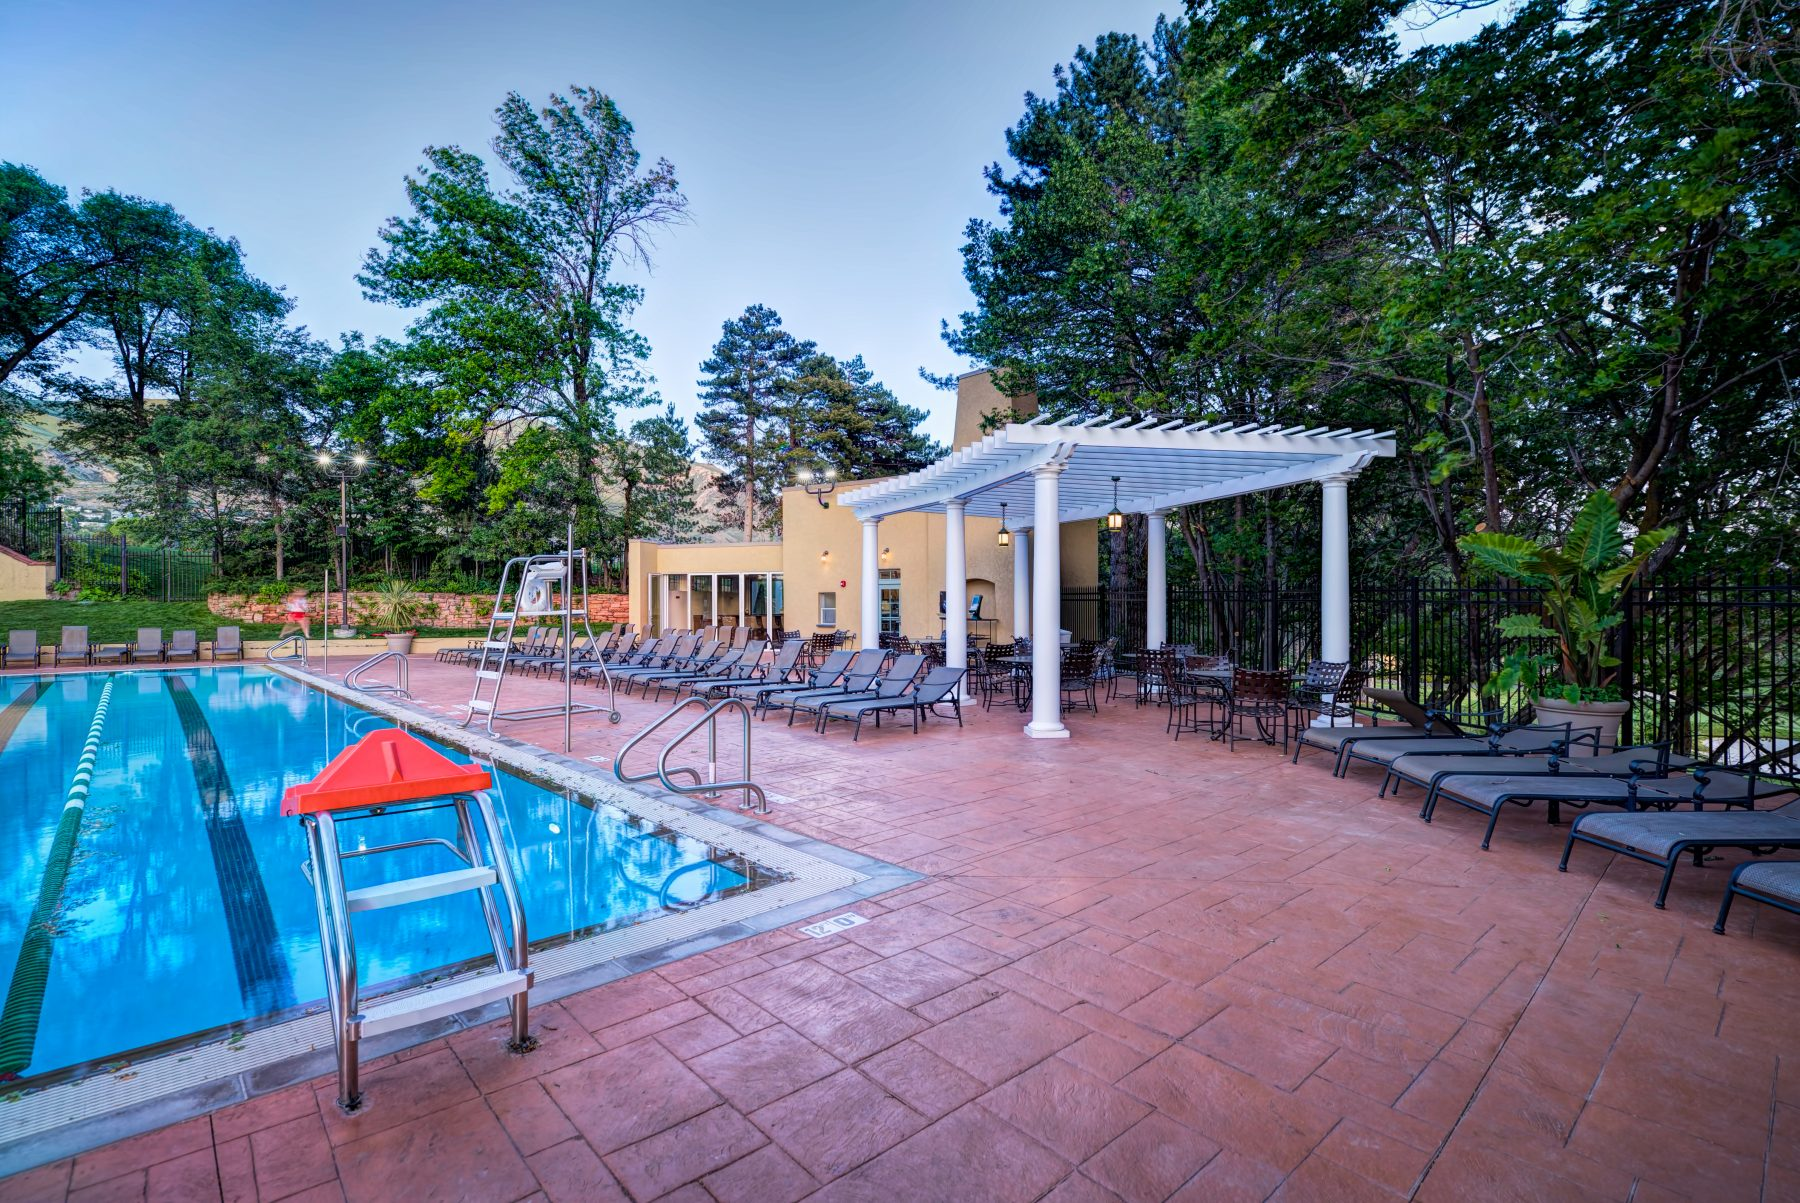 Salt Lake City Country Club Pool & Cabana